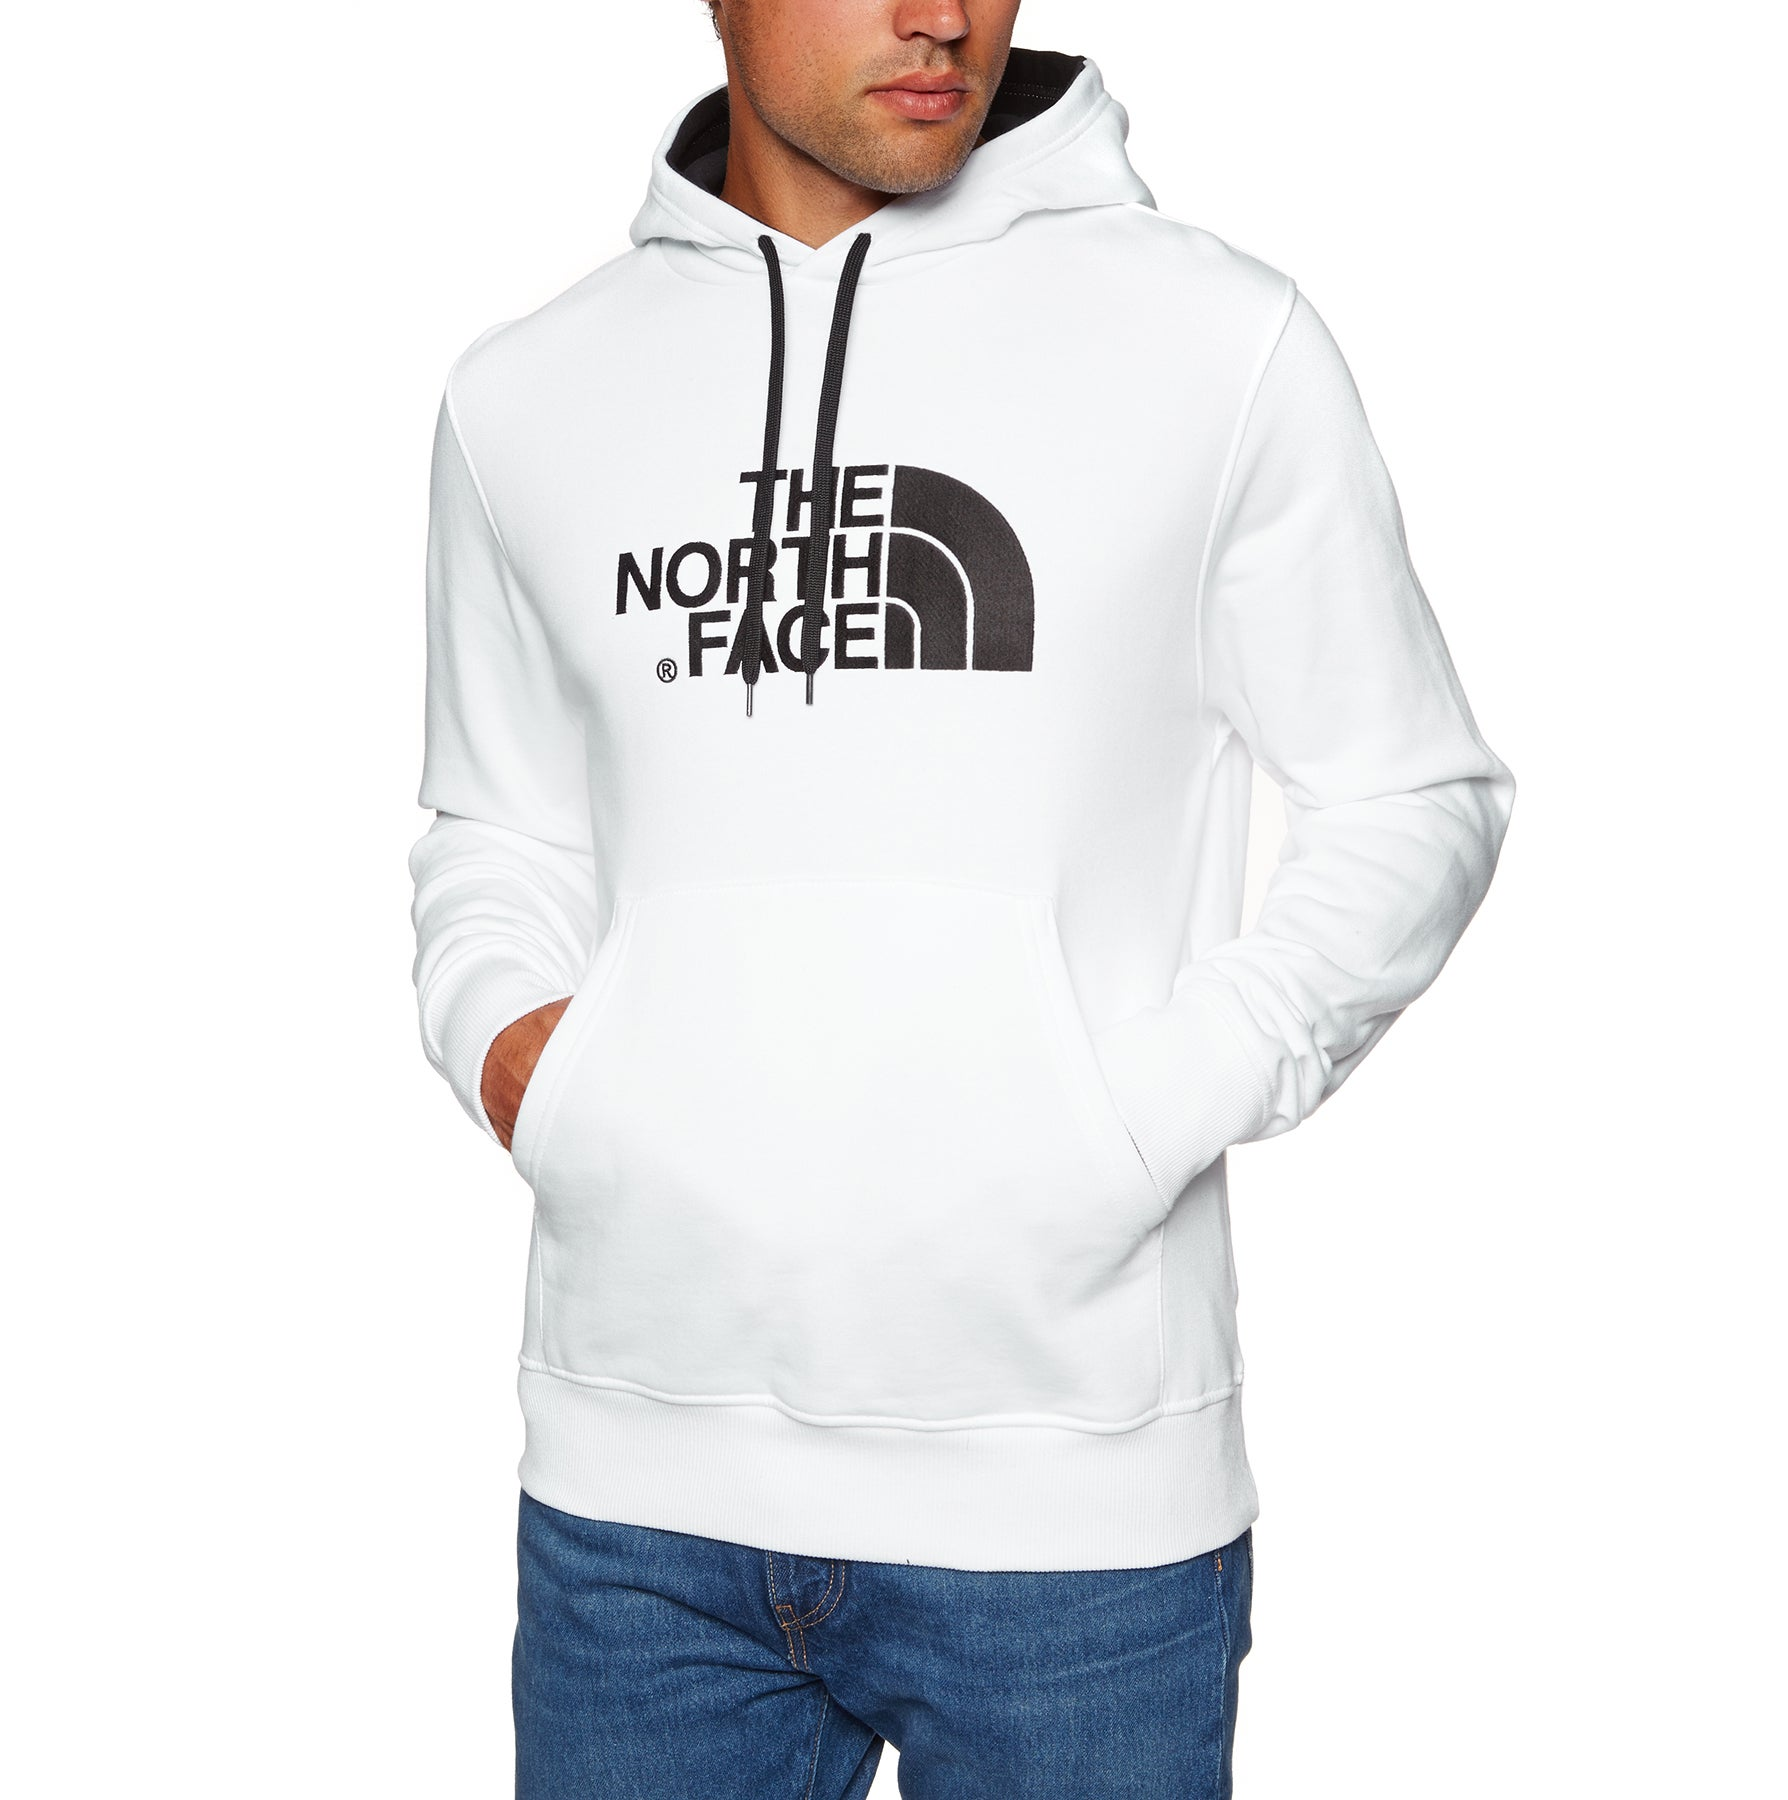 9baf8e78e North Face Drew Peak Pullover Hoody available from Surfdome